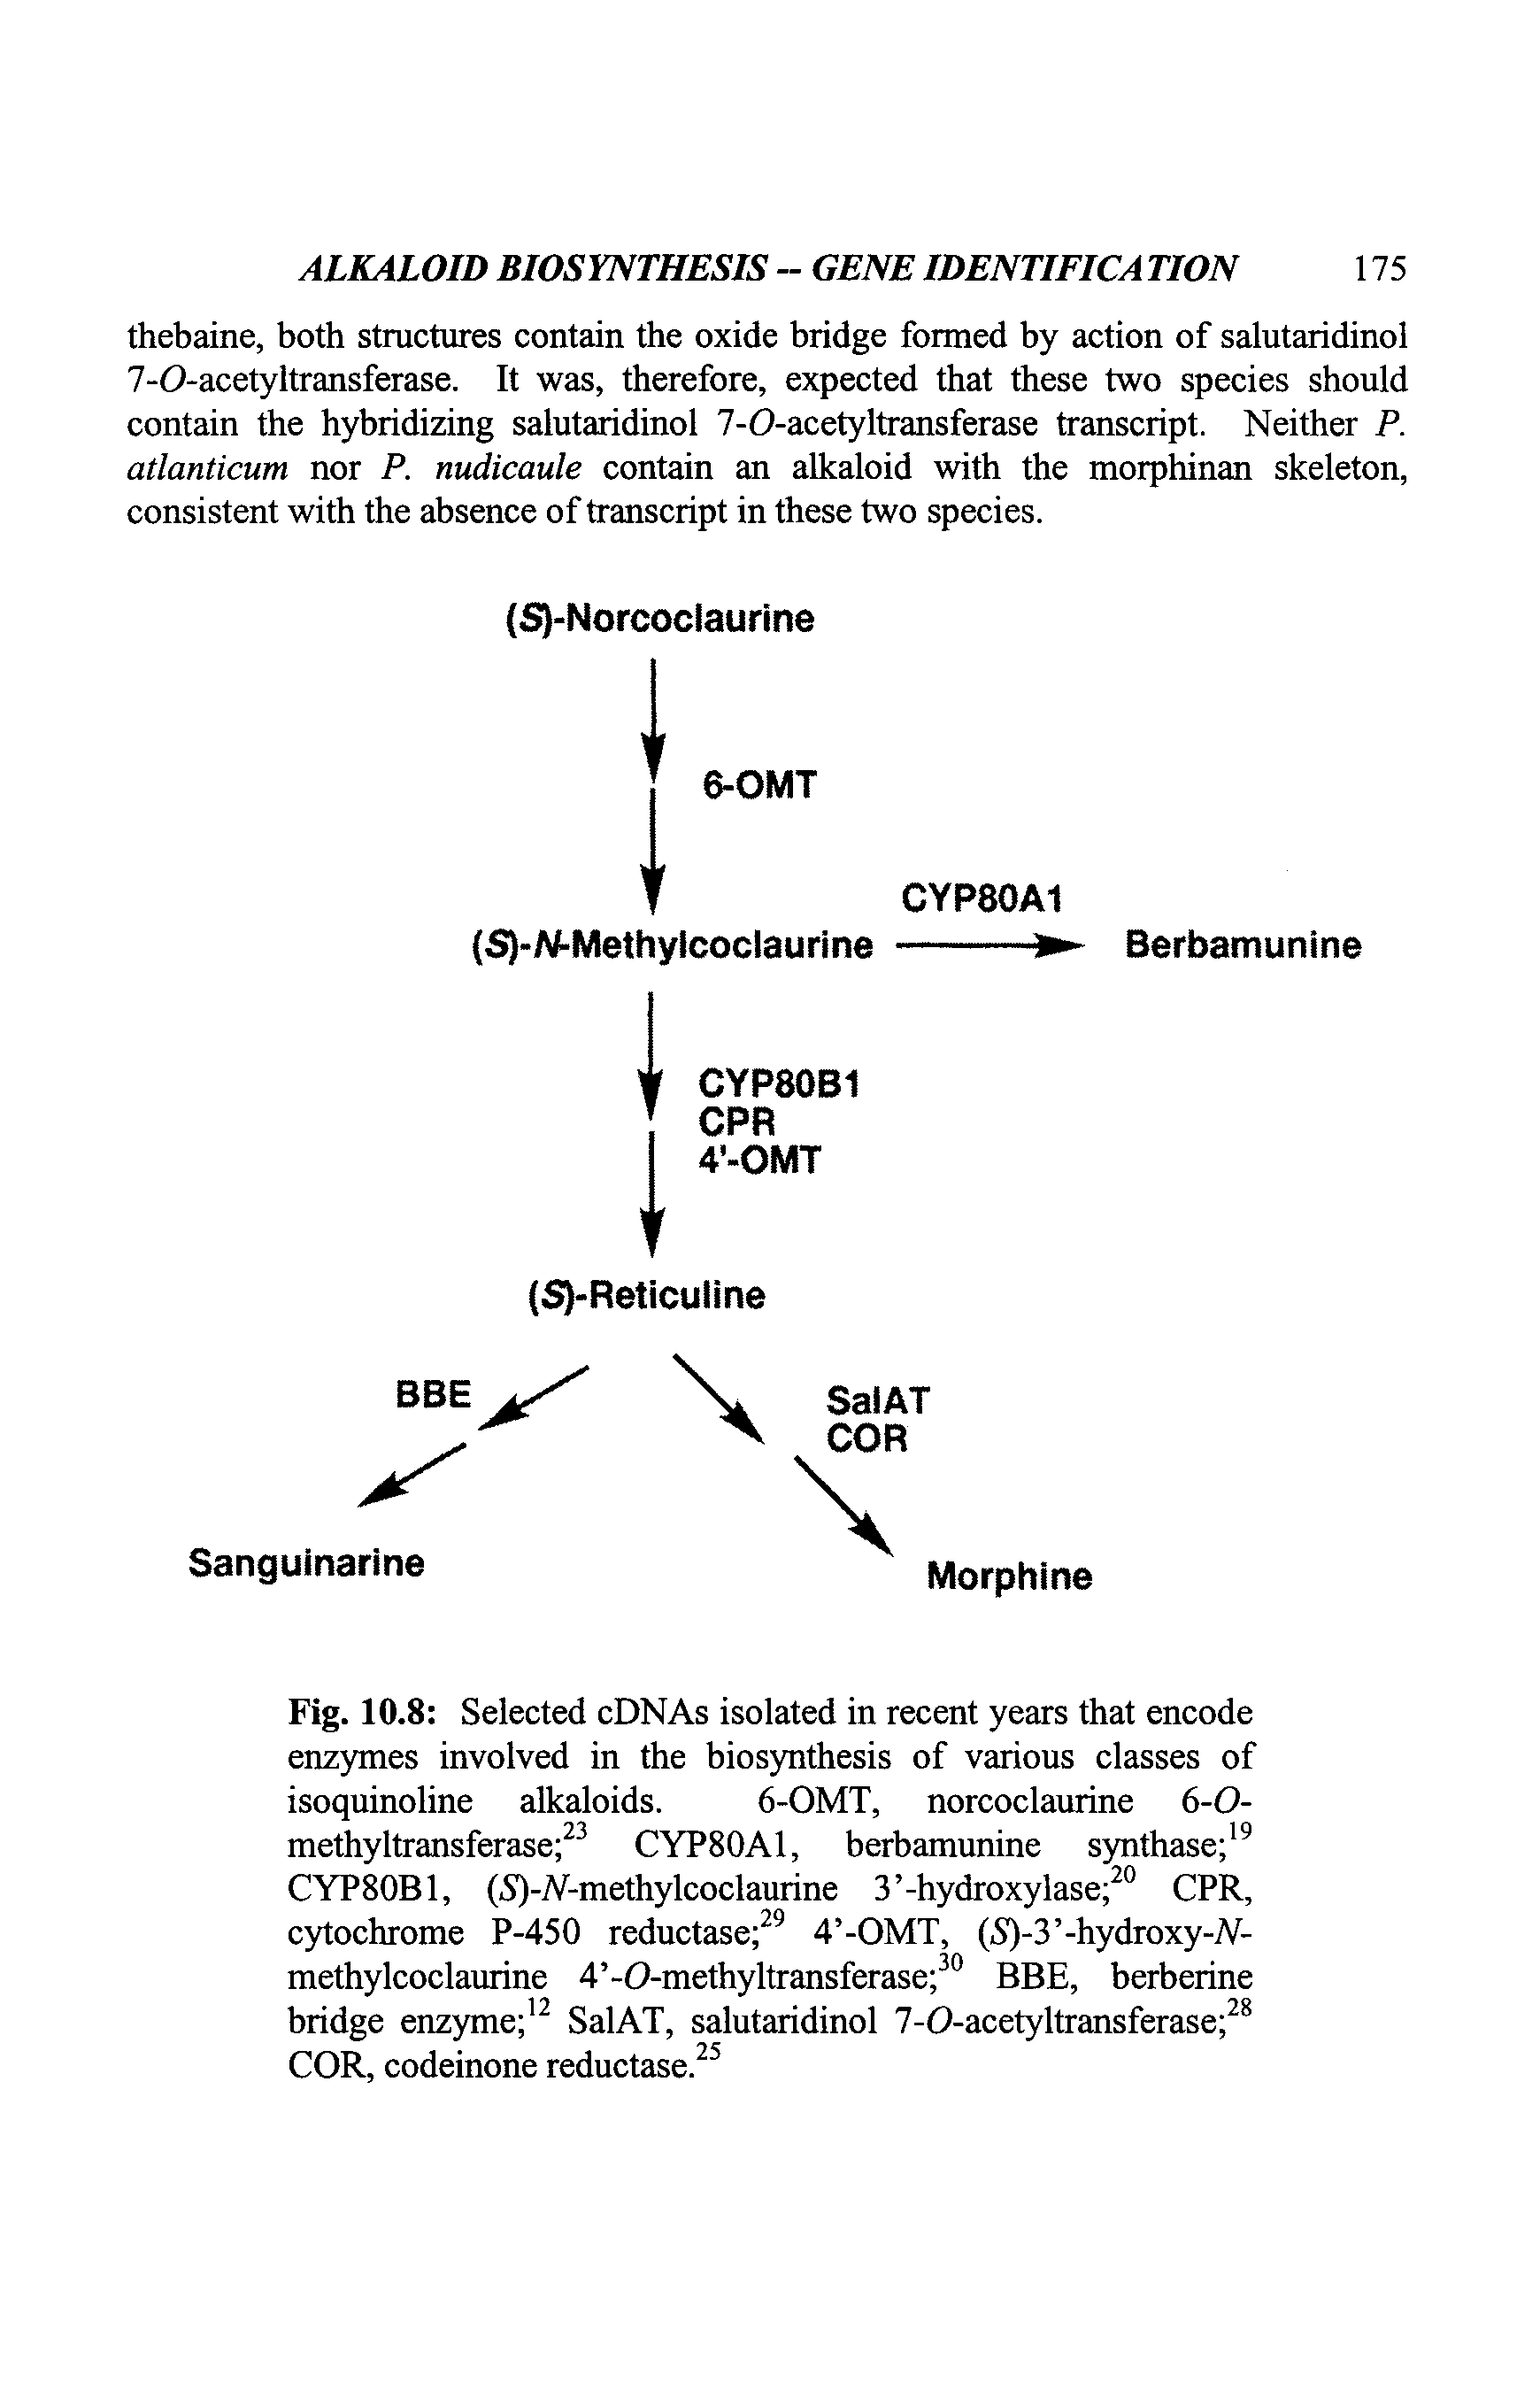 Fig. 10.8 Selected cDNAs isolated in recent years that encode enzymes involved in the biosynthesis of various classes of isoquinoline alkaloids. 6-OMT, norcoclaurine 6-0-methyltransferase 23 CYP80A1, berbamunine synthase 19 CYP80B1, (S)-A-methylcoclaurine 3 -hydroxylase 20 CPR, cytochrome P-450 reductase 29 4 -OMT, (5)-3 -hydroxy-A-methylcoclaurine 4 -0-methyltransferase 30 BBE, berberine bridge enzyme 12 SalAT, salutaridinol 7-O-acetyltransferase 28 COR, codeinone reductase.25...